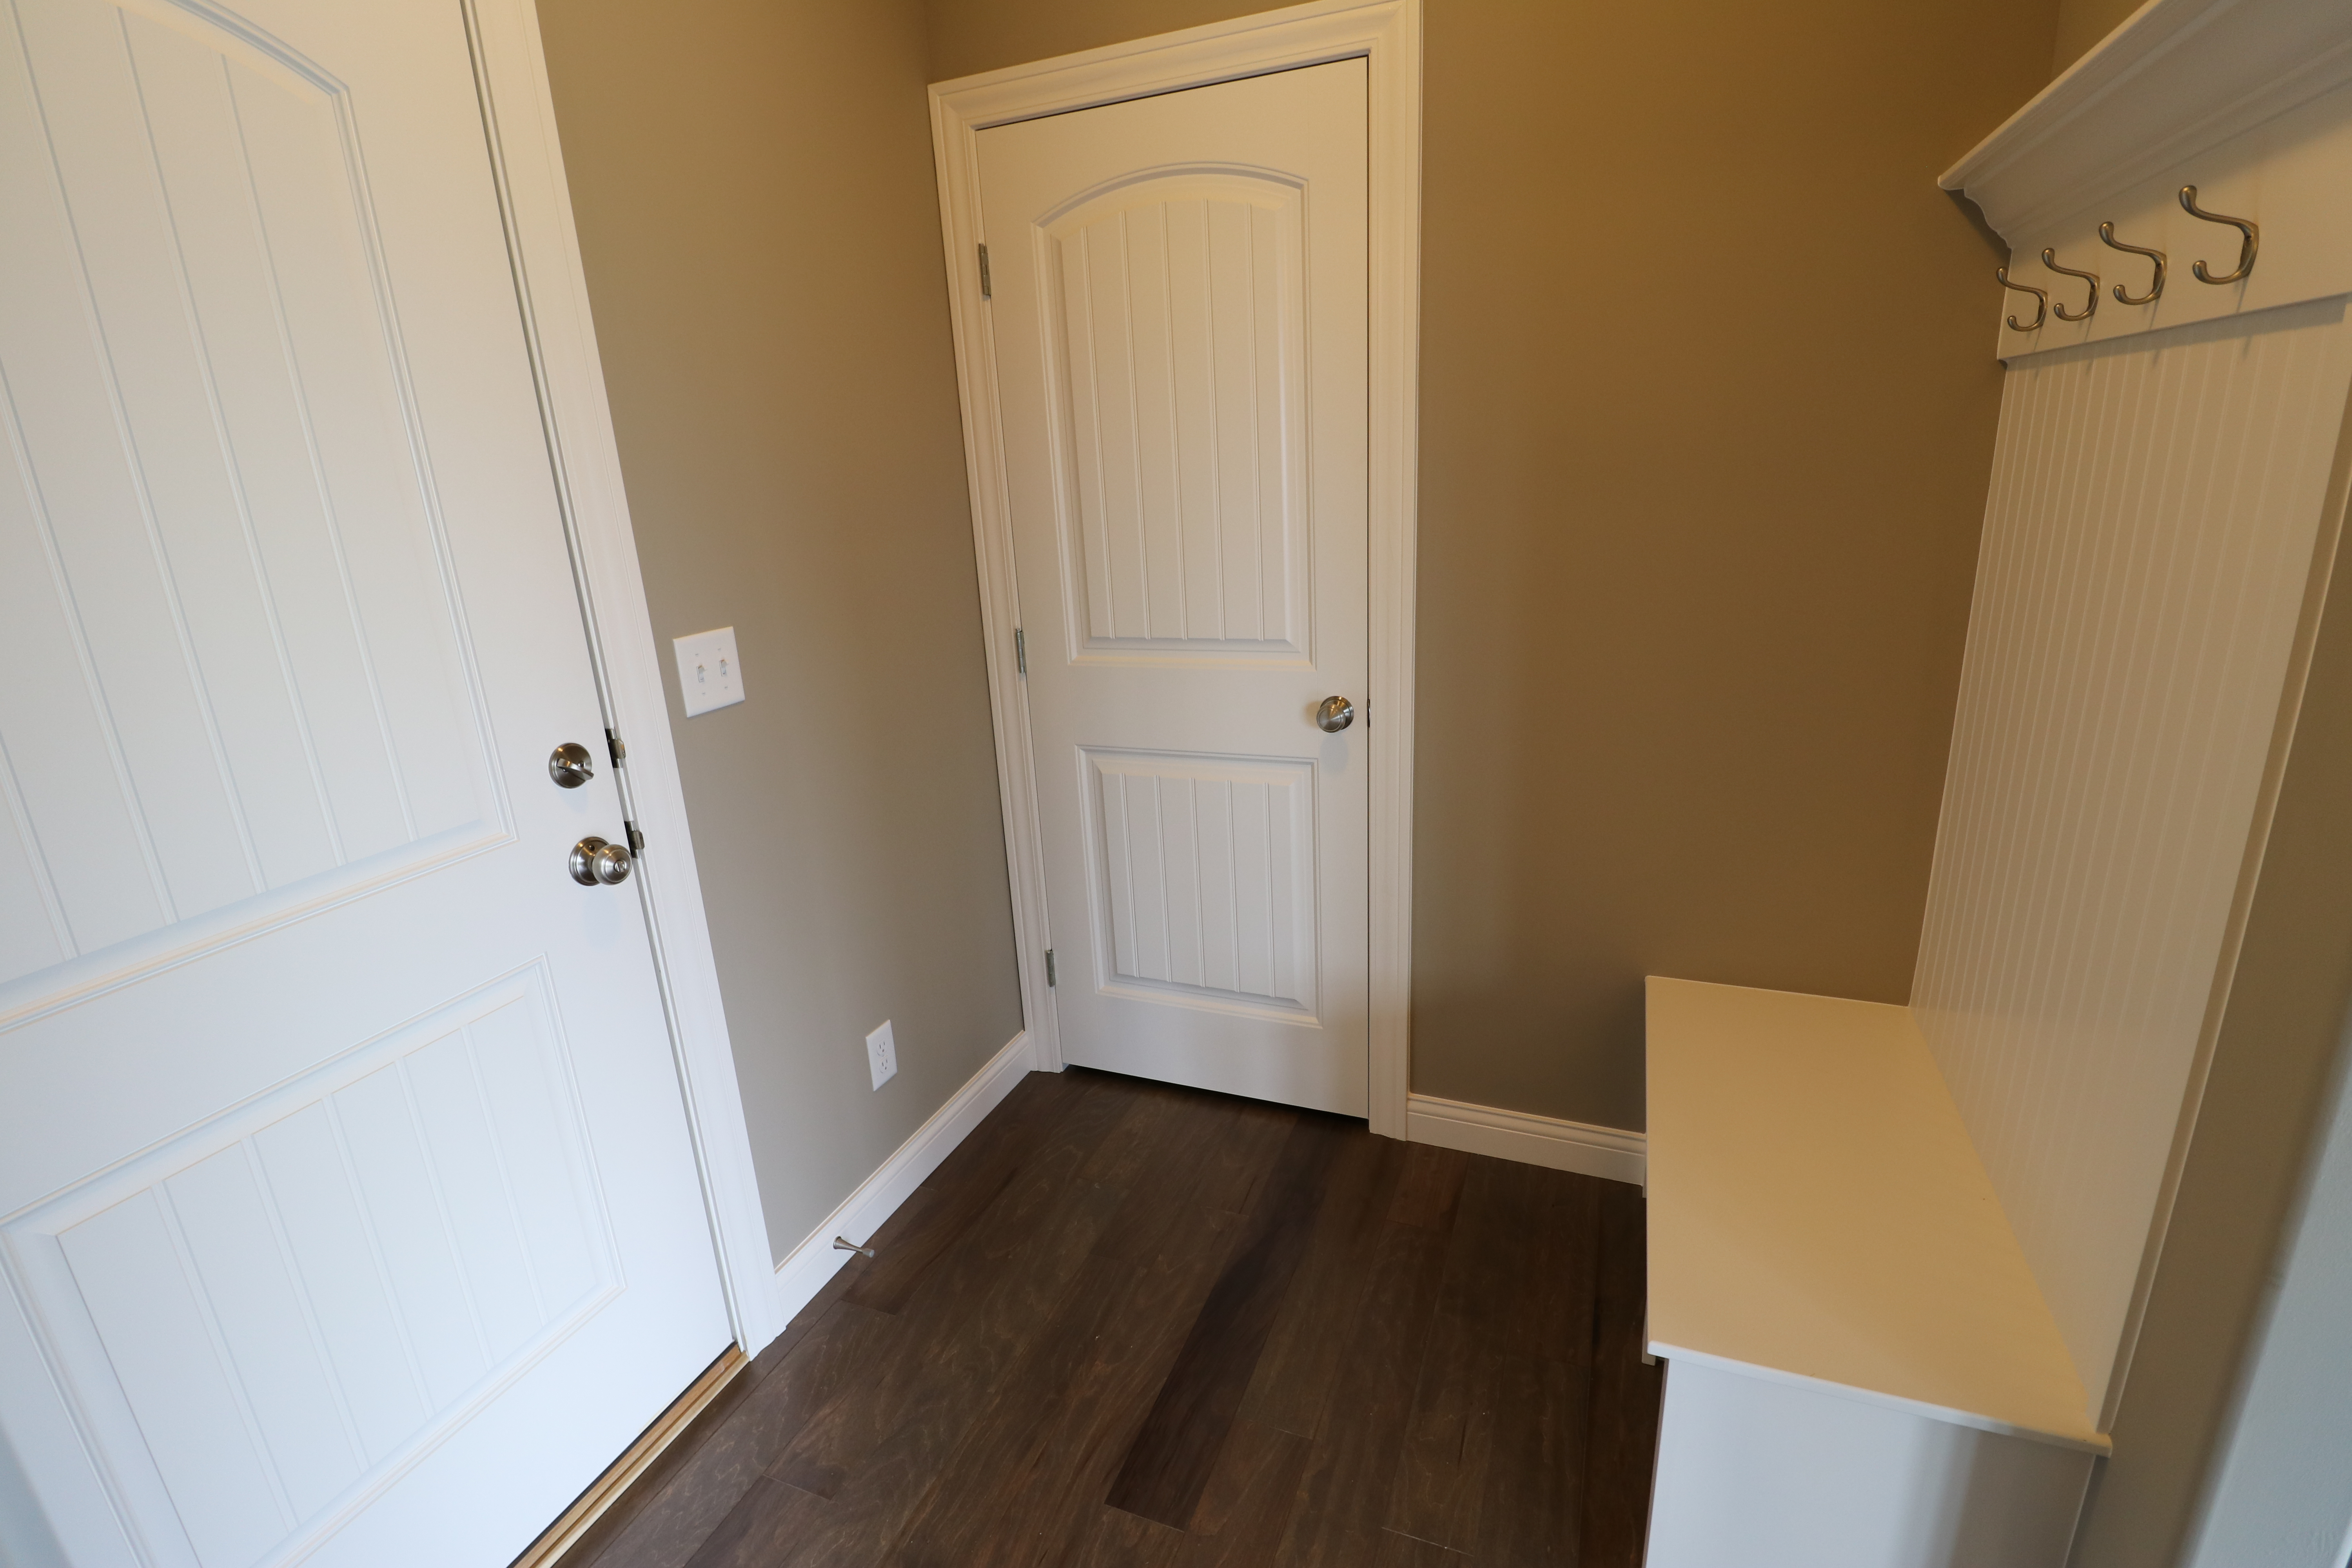 House for sale in the Dunlap peoria area part2